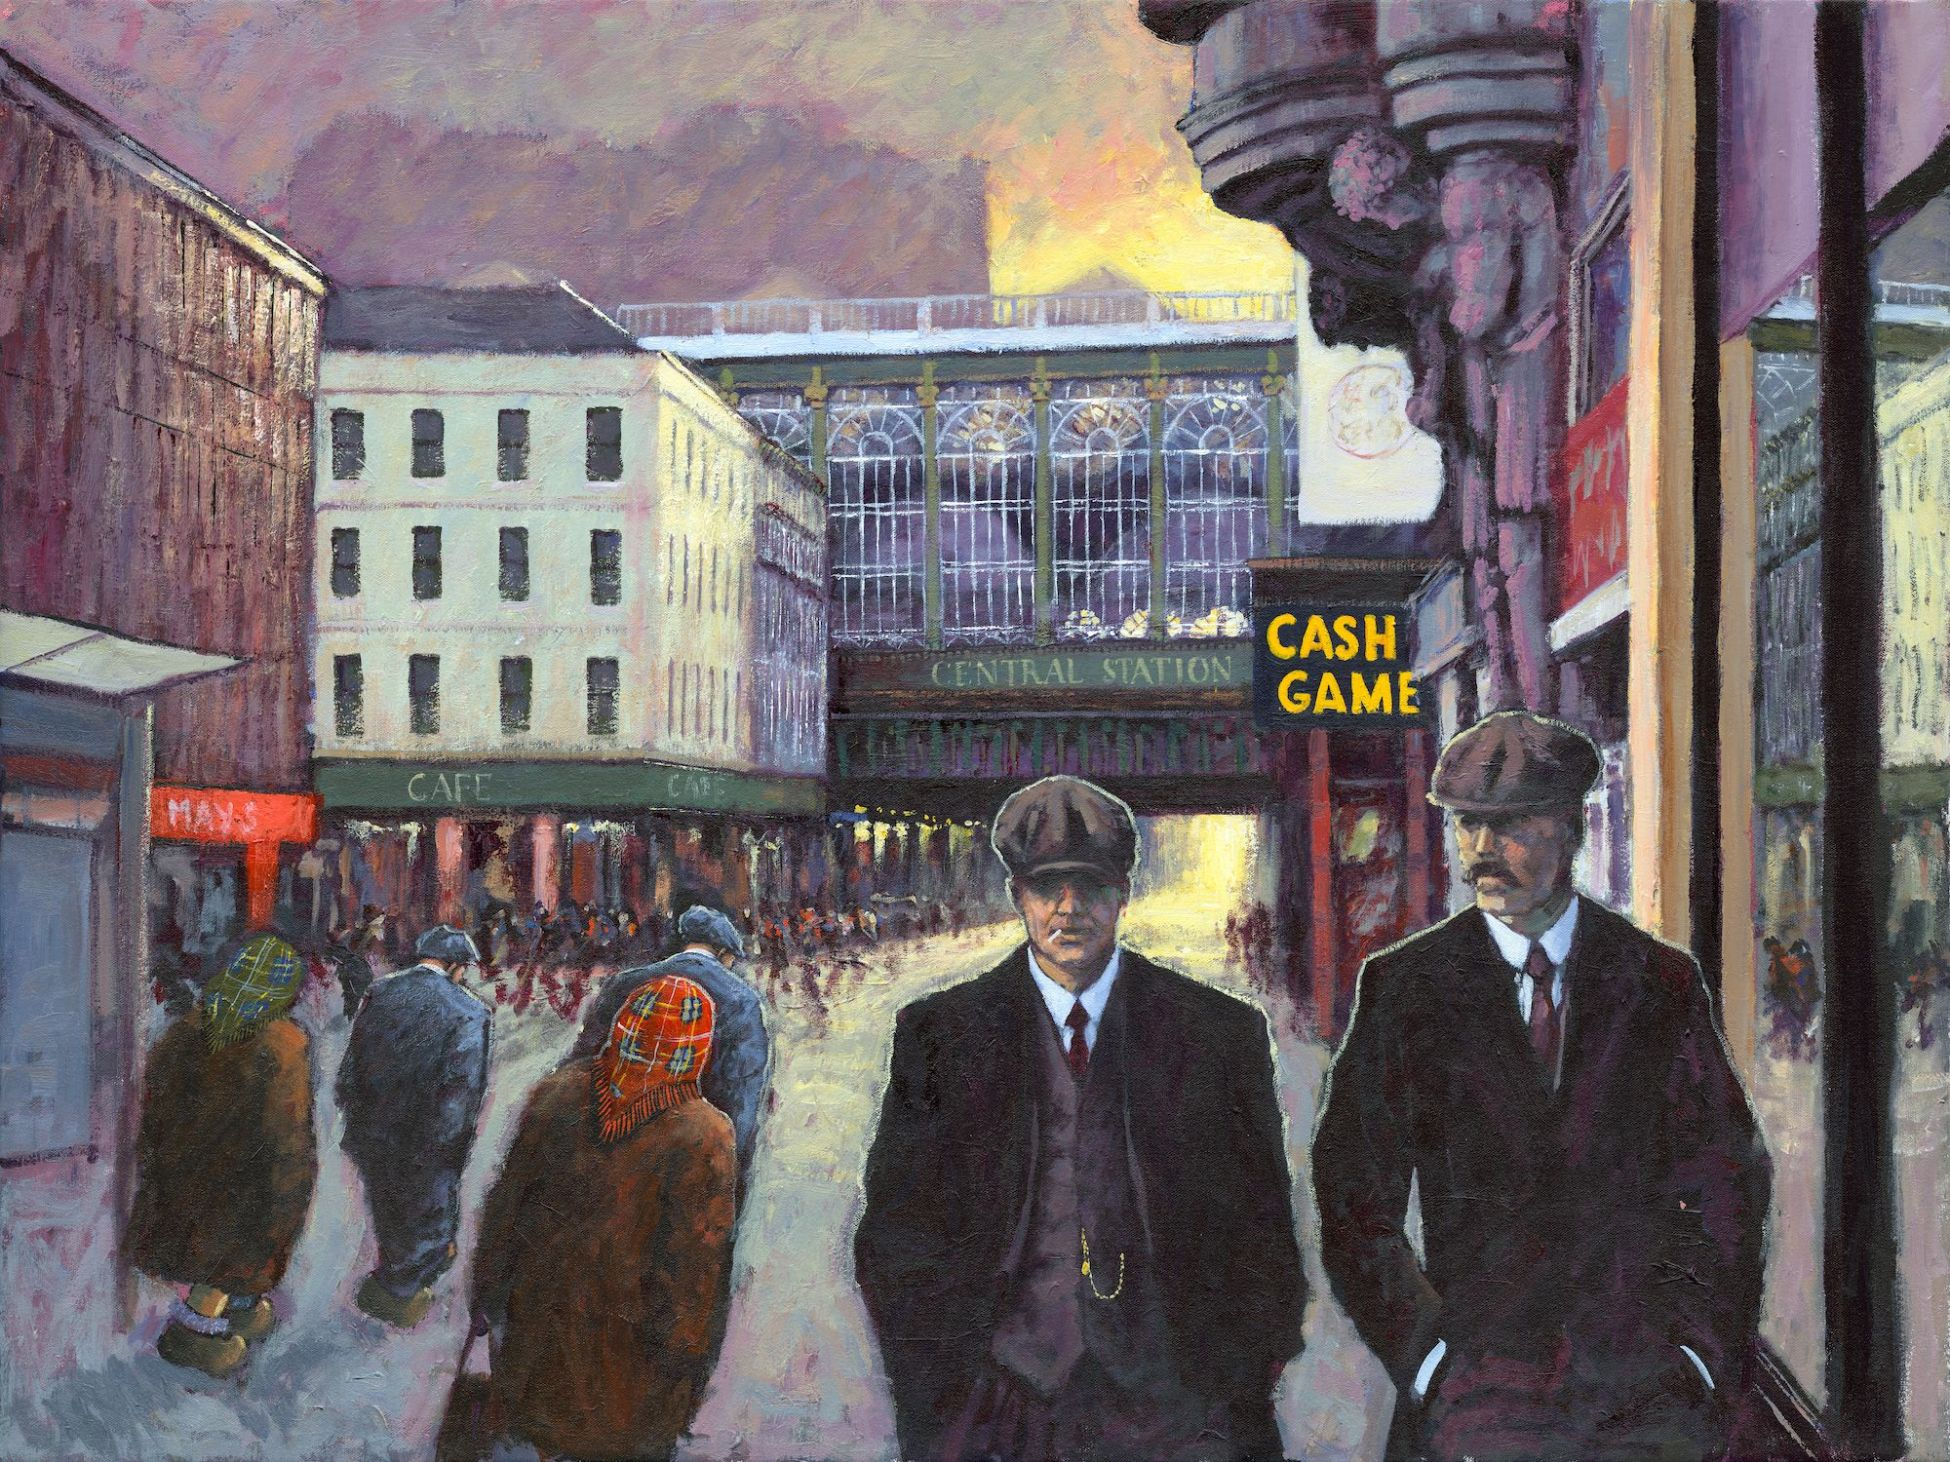 The Boys Are Back in Town by Alexander Millar